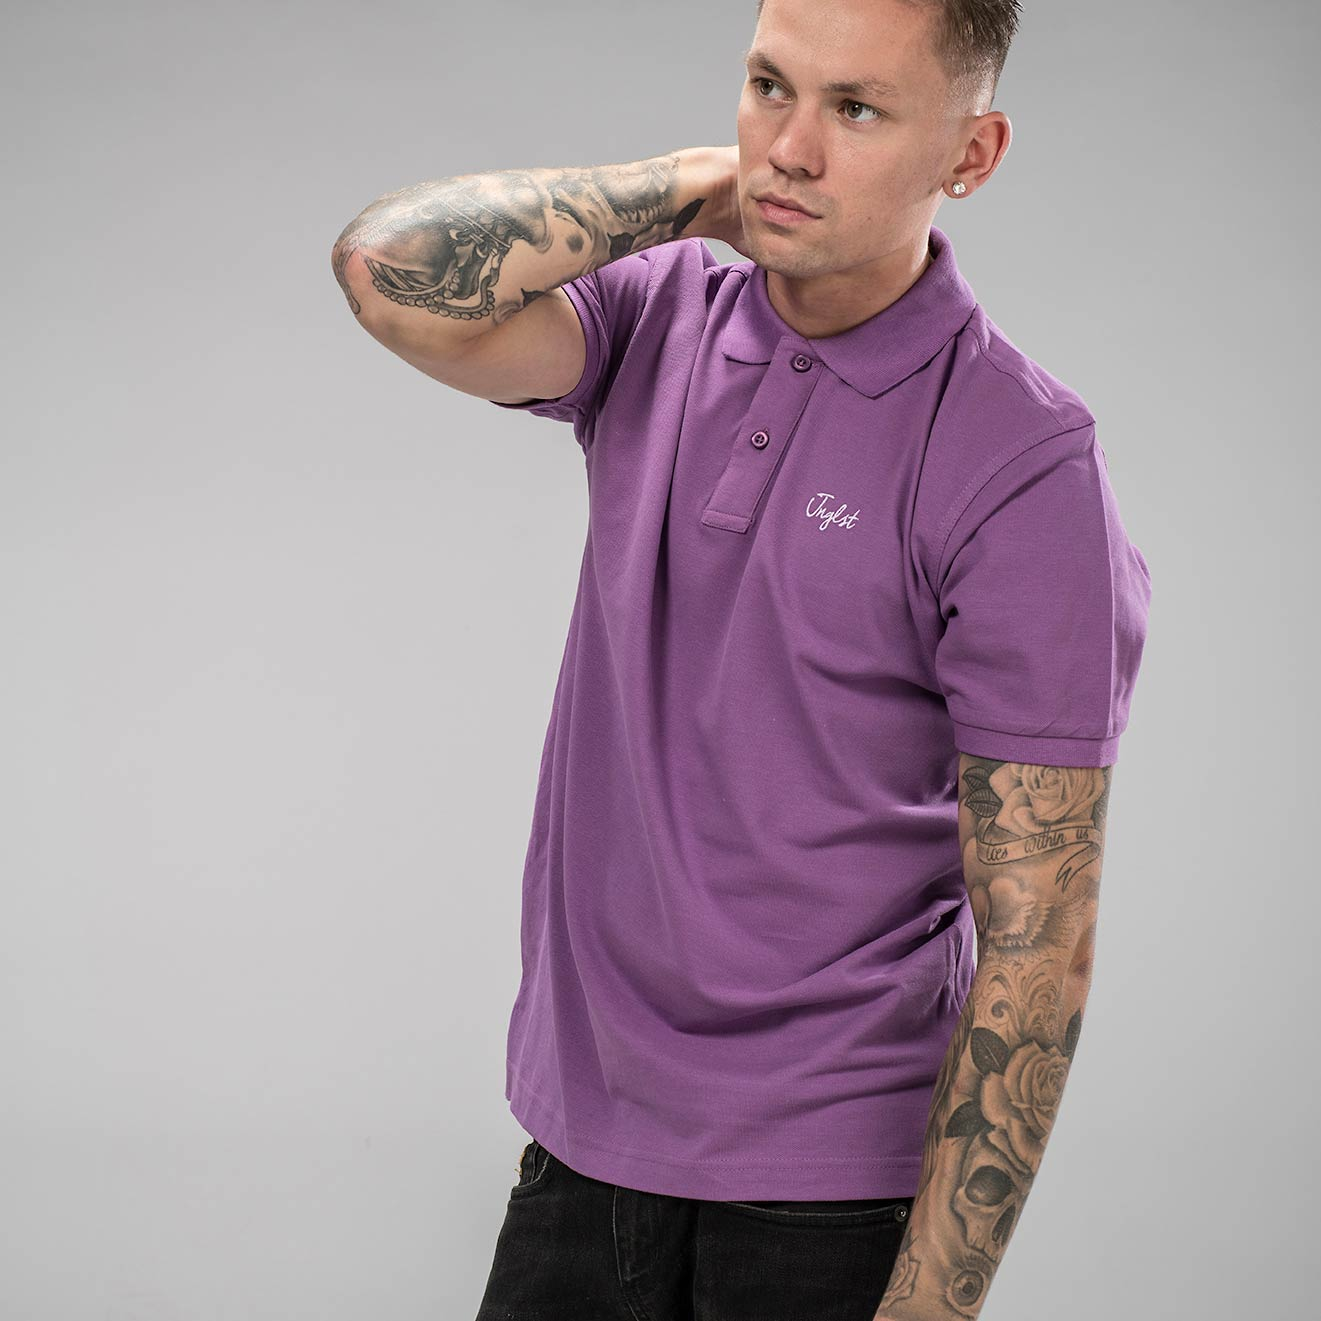 Polo Shirt by Jnglst Clothing